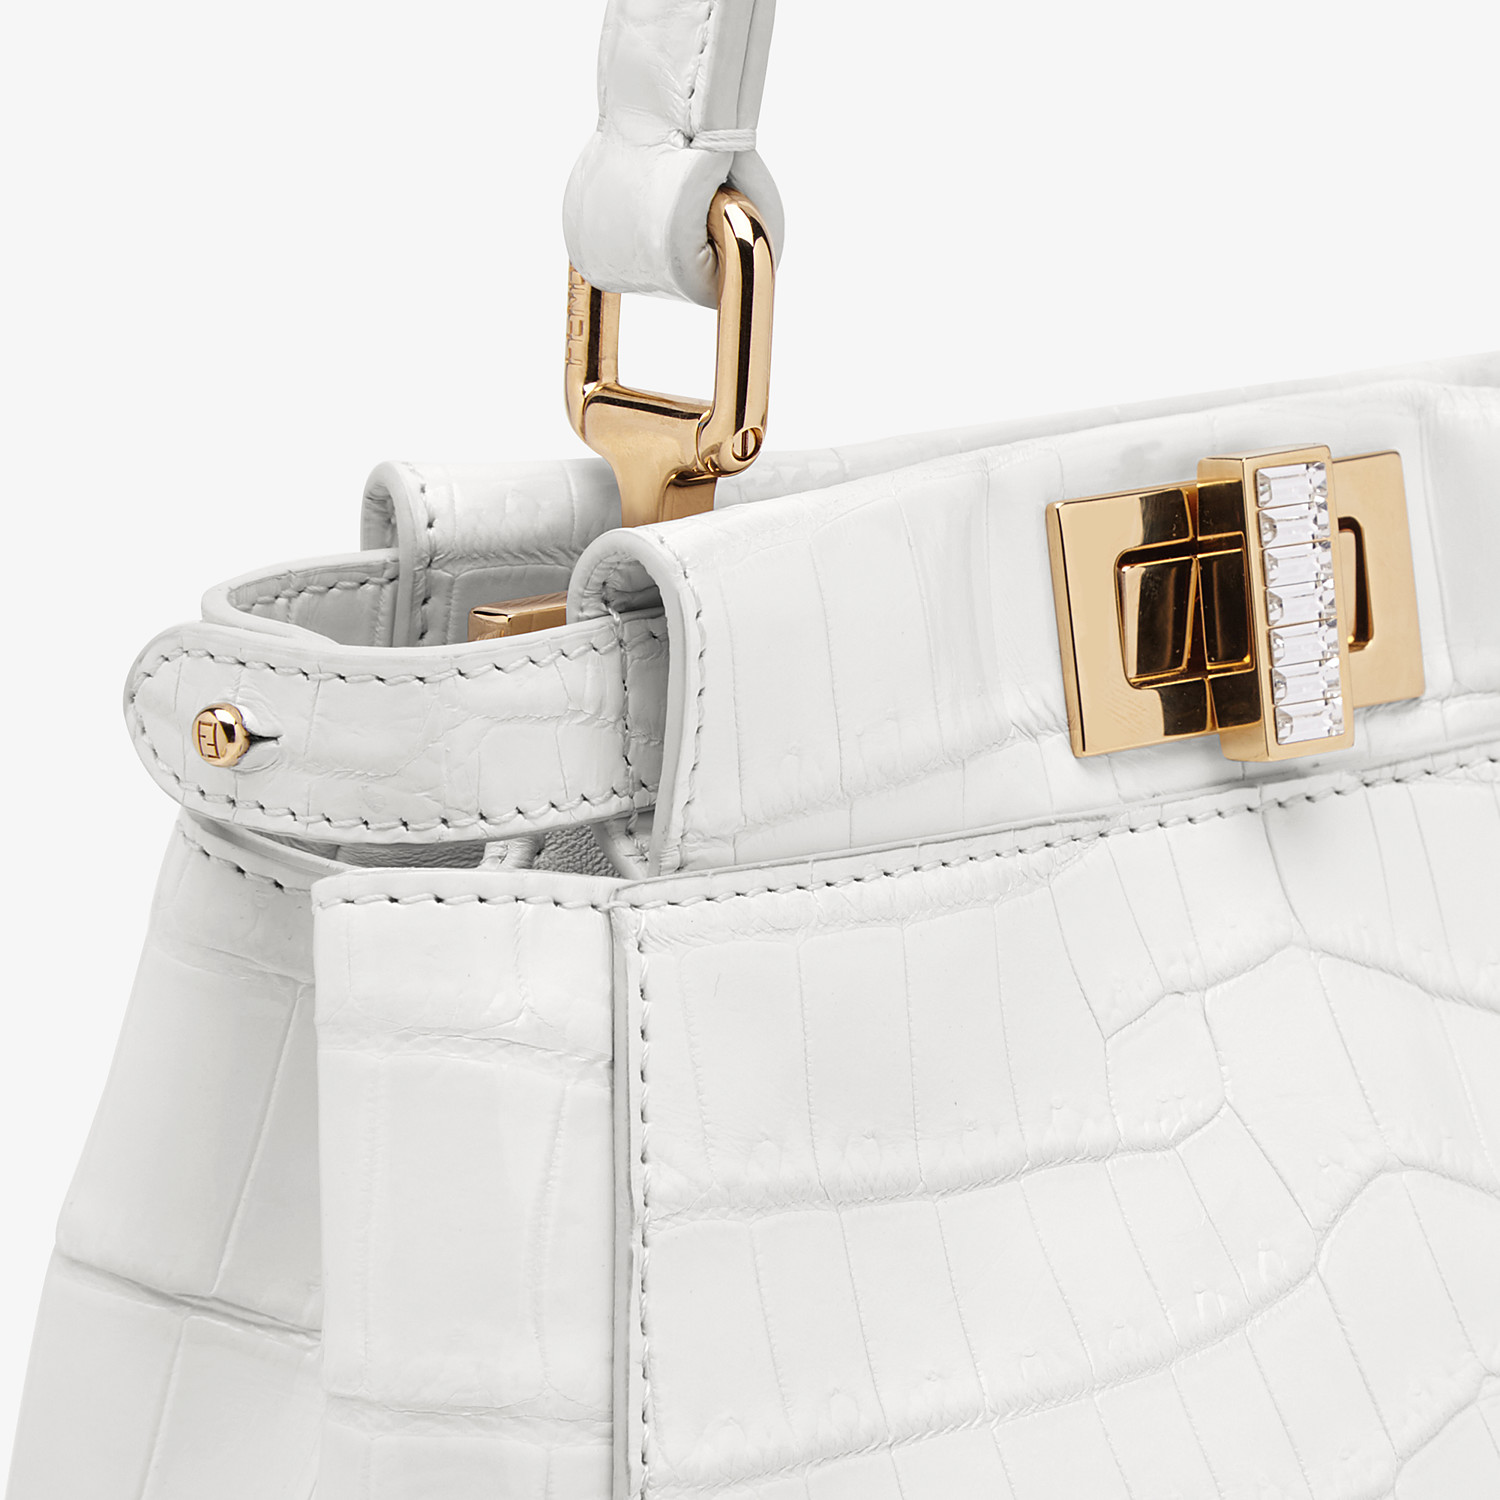 FENDI PEEKABOO ICONIC XS - Mini-bag in white crocodile - view 5 detail